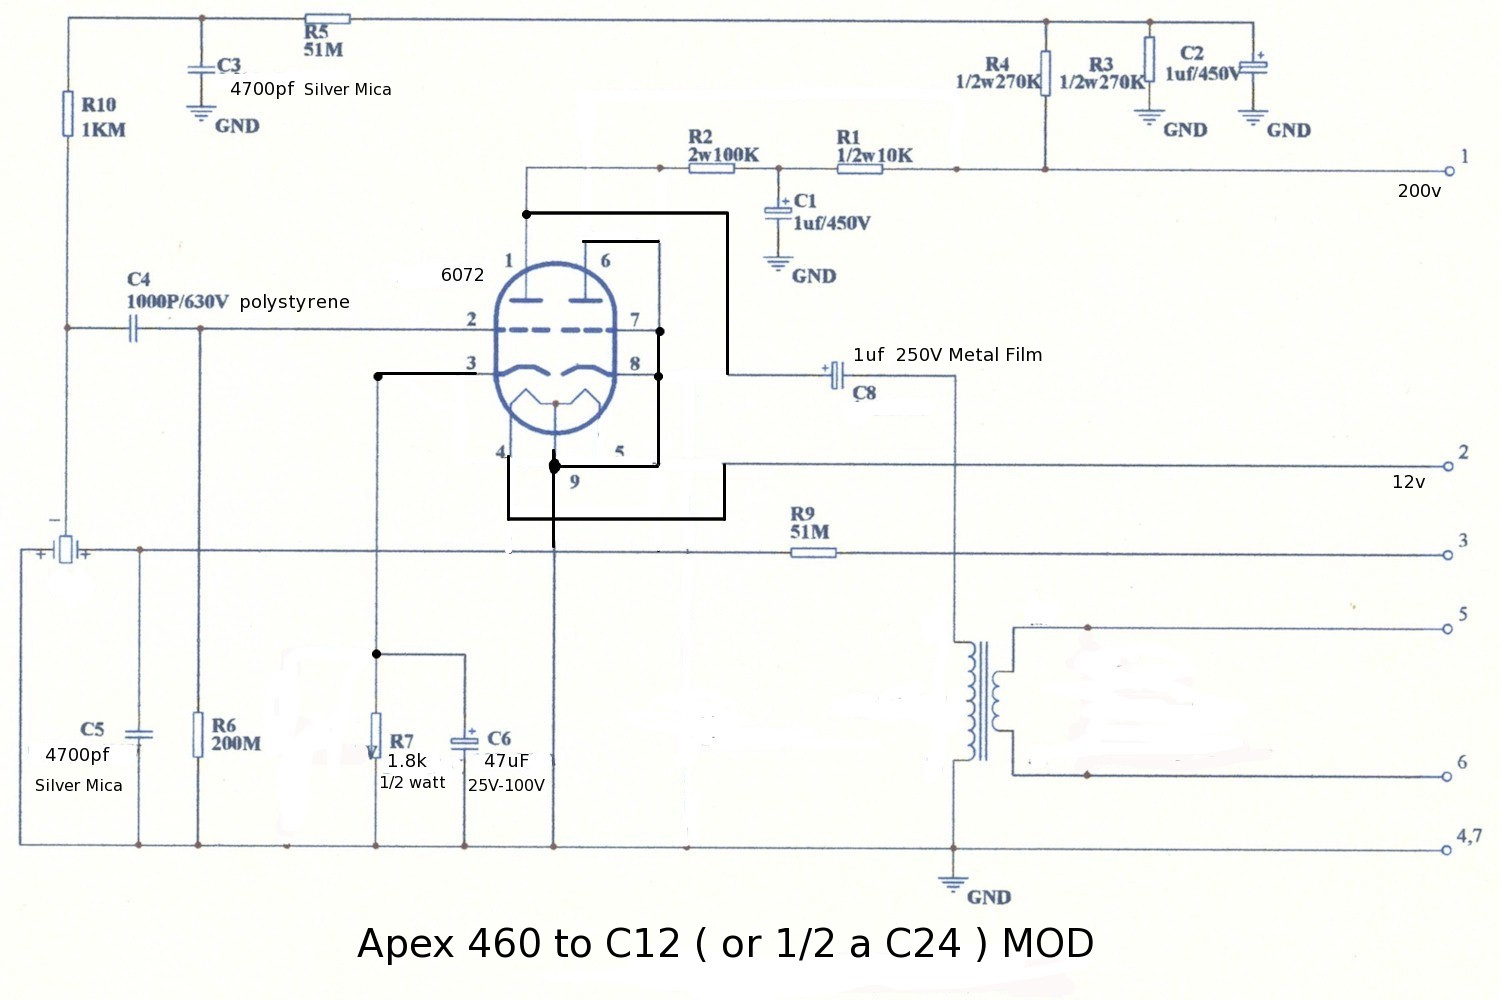 apex460 c12 mod apex 460 mod mark o matic llc apex vdm wiring diagram at soozxer.org